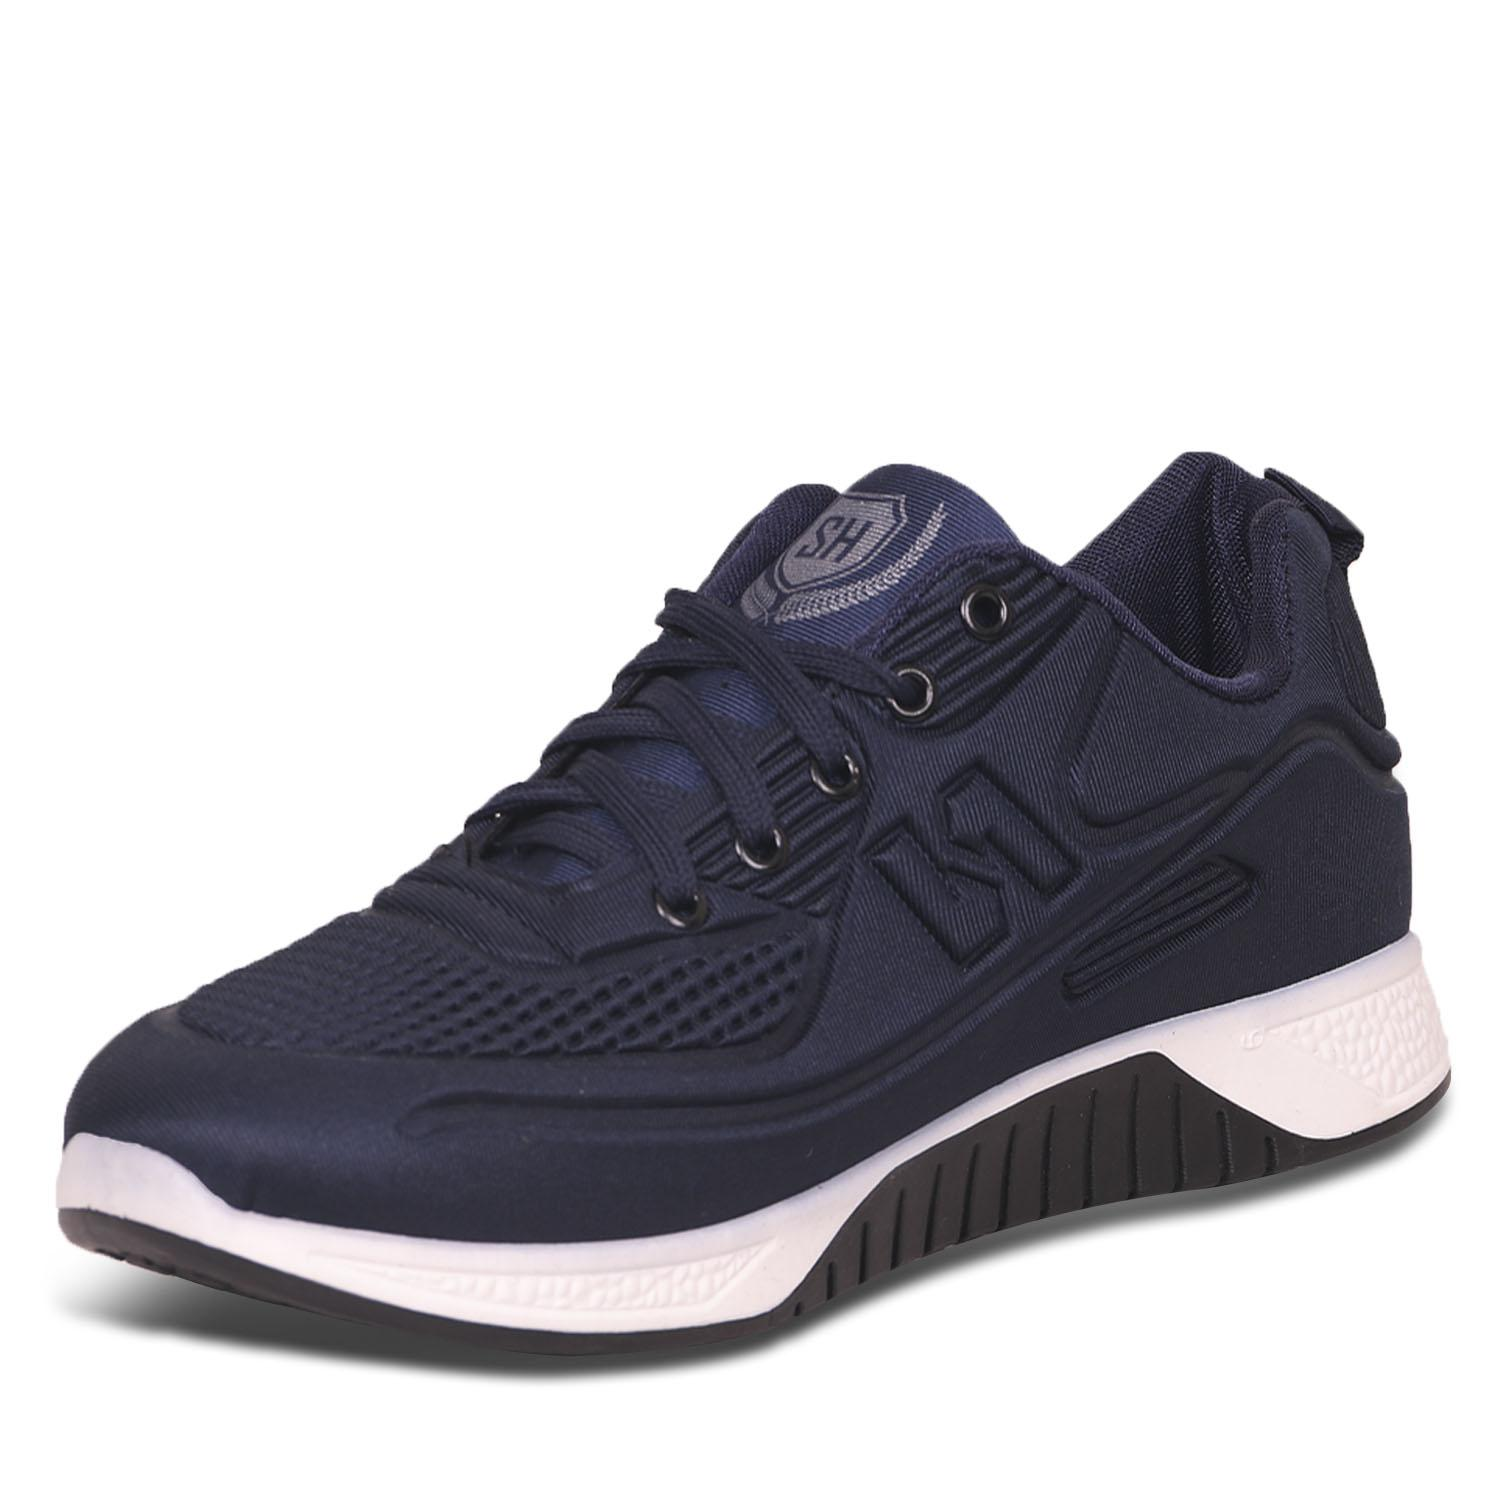 Sneaker Pria Air Flex Sport Shoes - Swiss Hunter